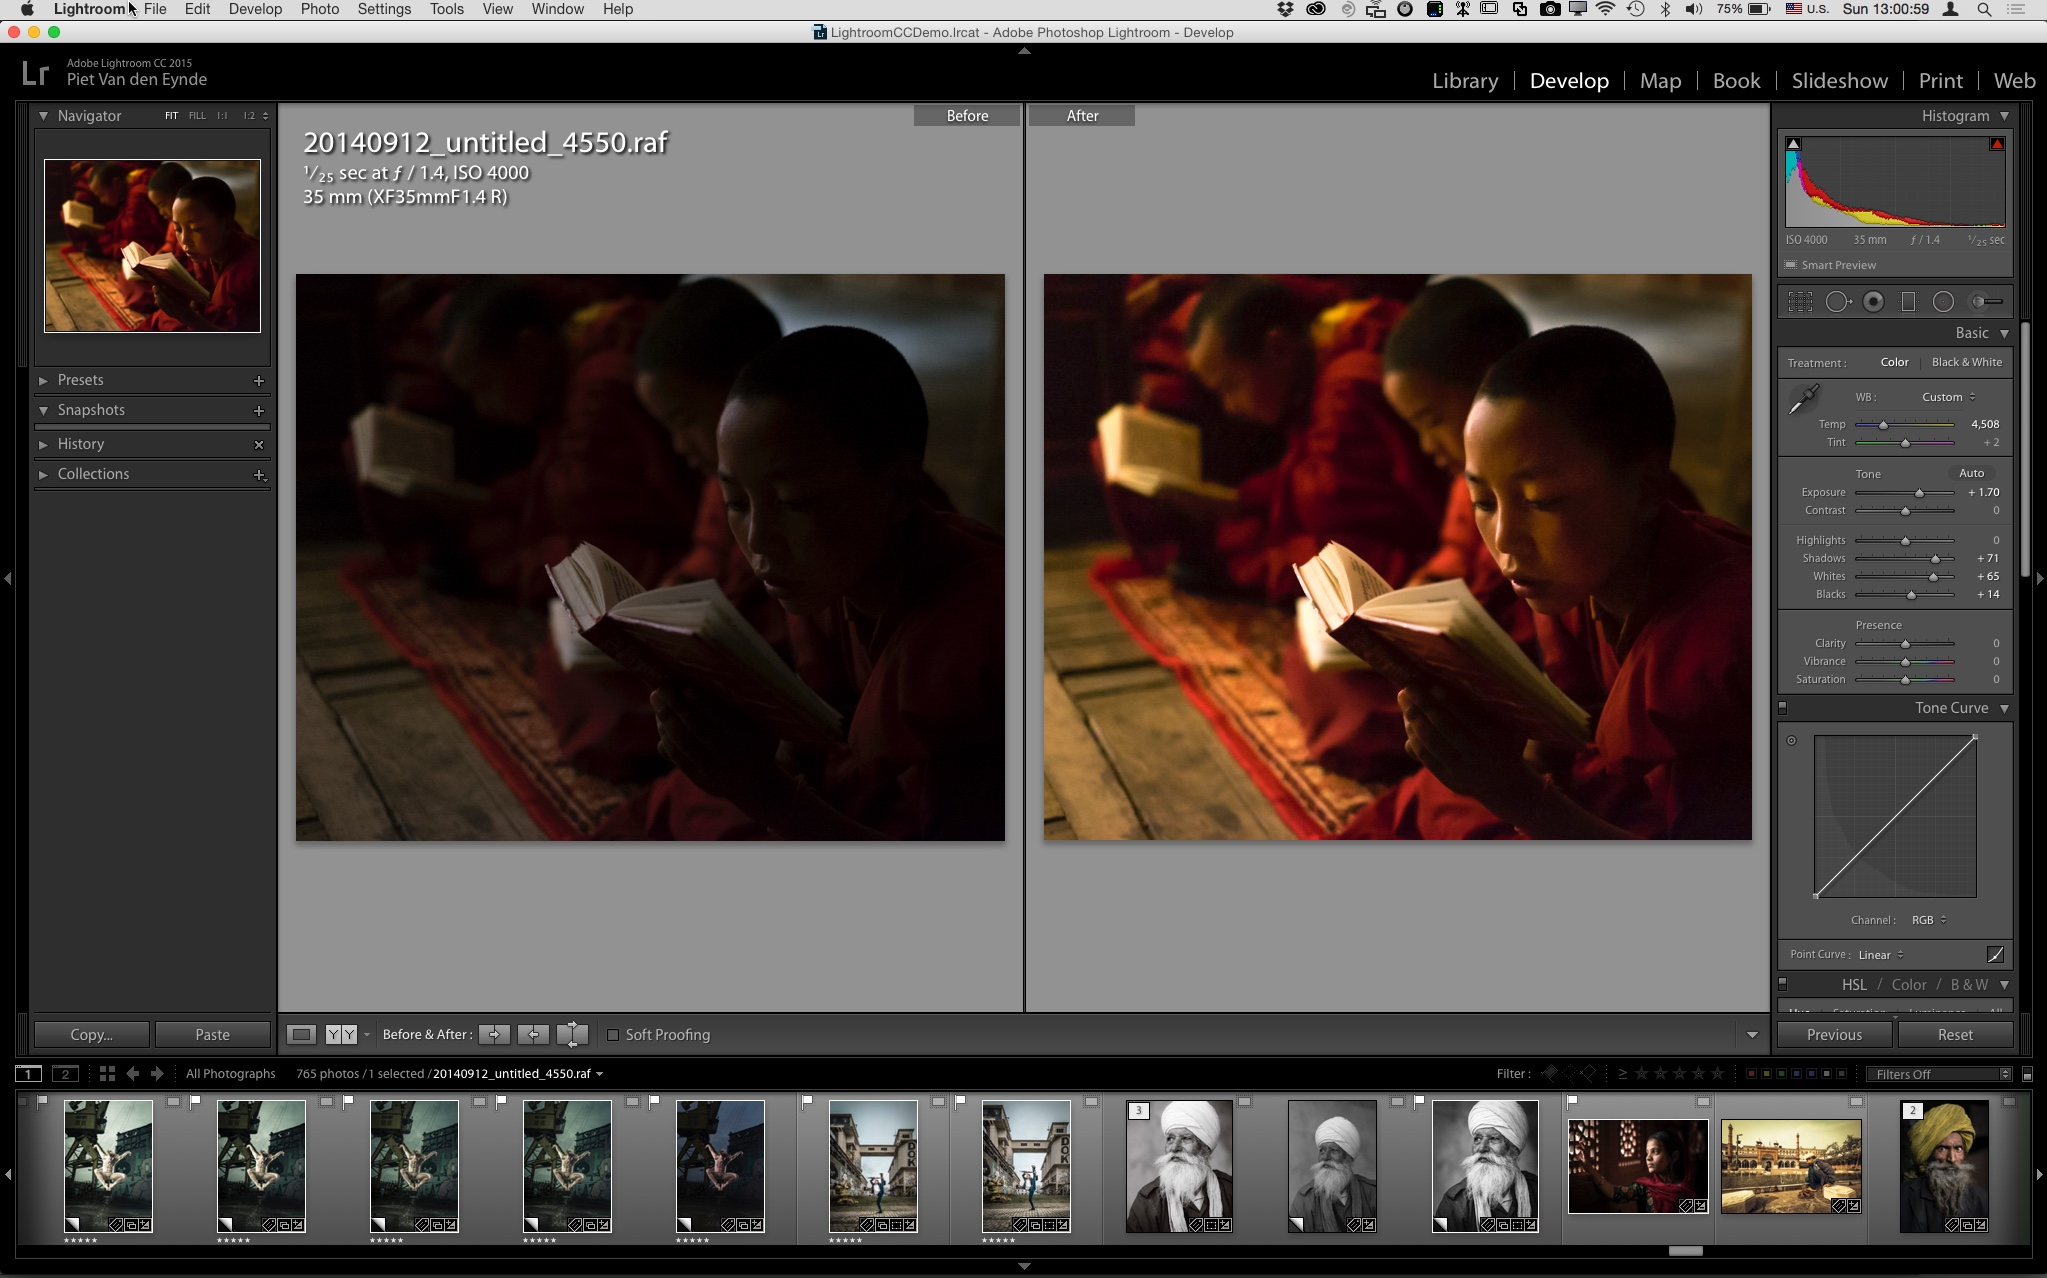 Don't you just love Fujifilm's fast prime lenses?Even at ISO 4000, an aperture of 1.4 and a shutter speed of 1/25th, this image shot inside a Buddhist monastery was still incredibly dark. After adding an extra stop and a half of Exposure in Lightroom and tweaking the Detail panel sliders a little, I got this perfectly printable image.